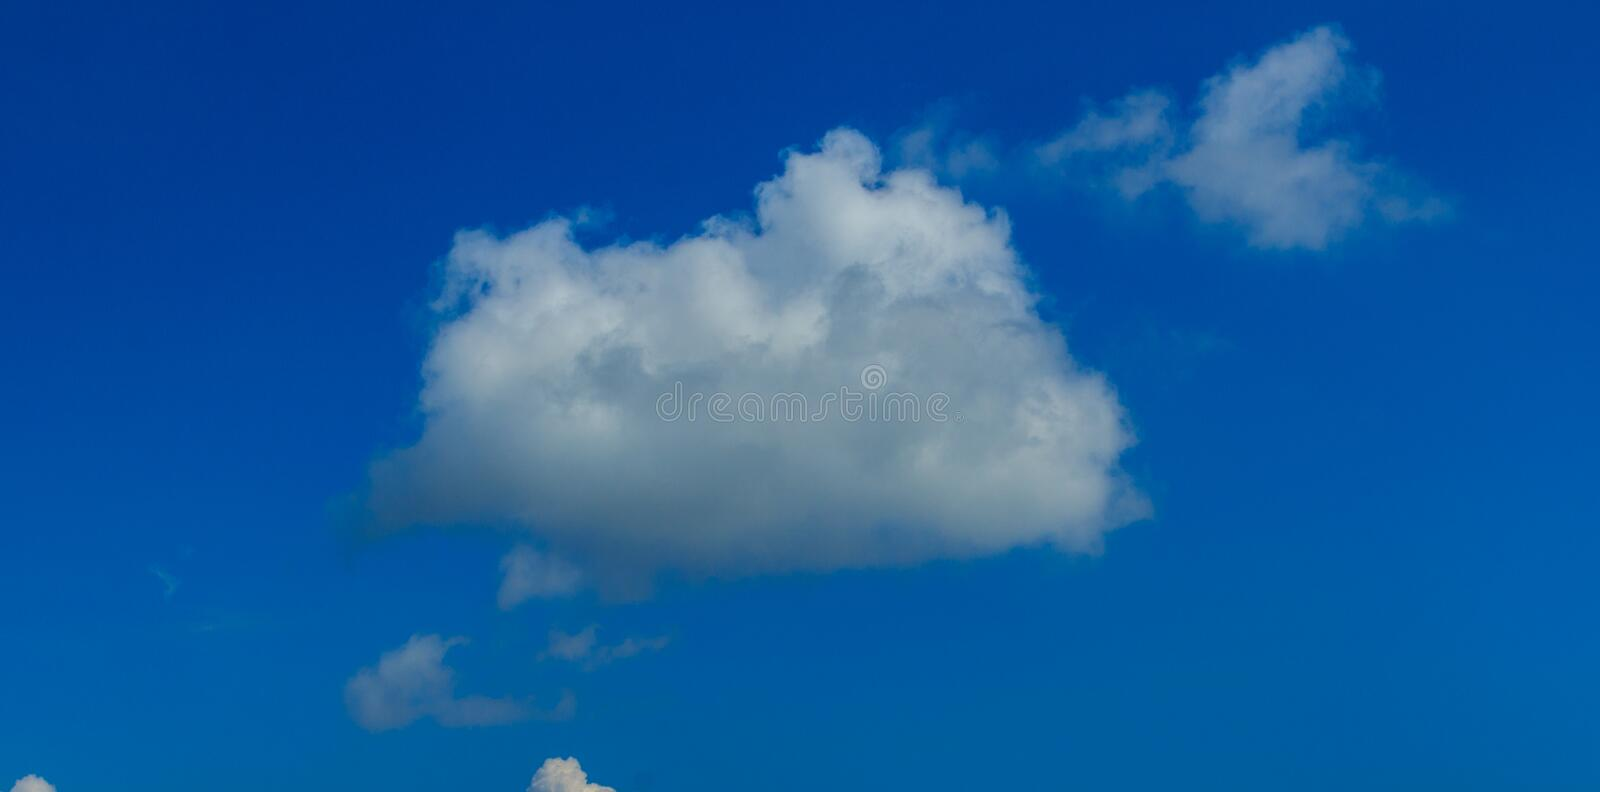 Clear blue sky with white clouds. Cloudless sky. Blue sky with a. Cloud obscured the view daytime desolate empty air clean royalty free stock photos